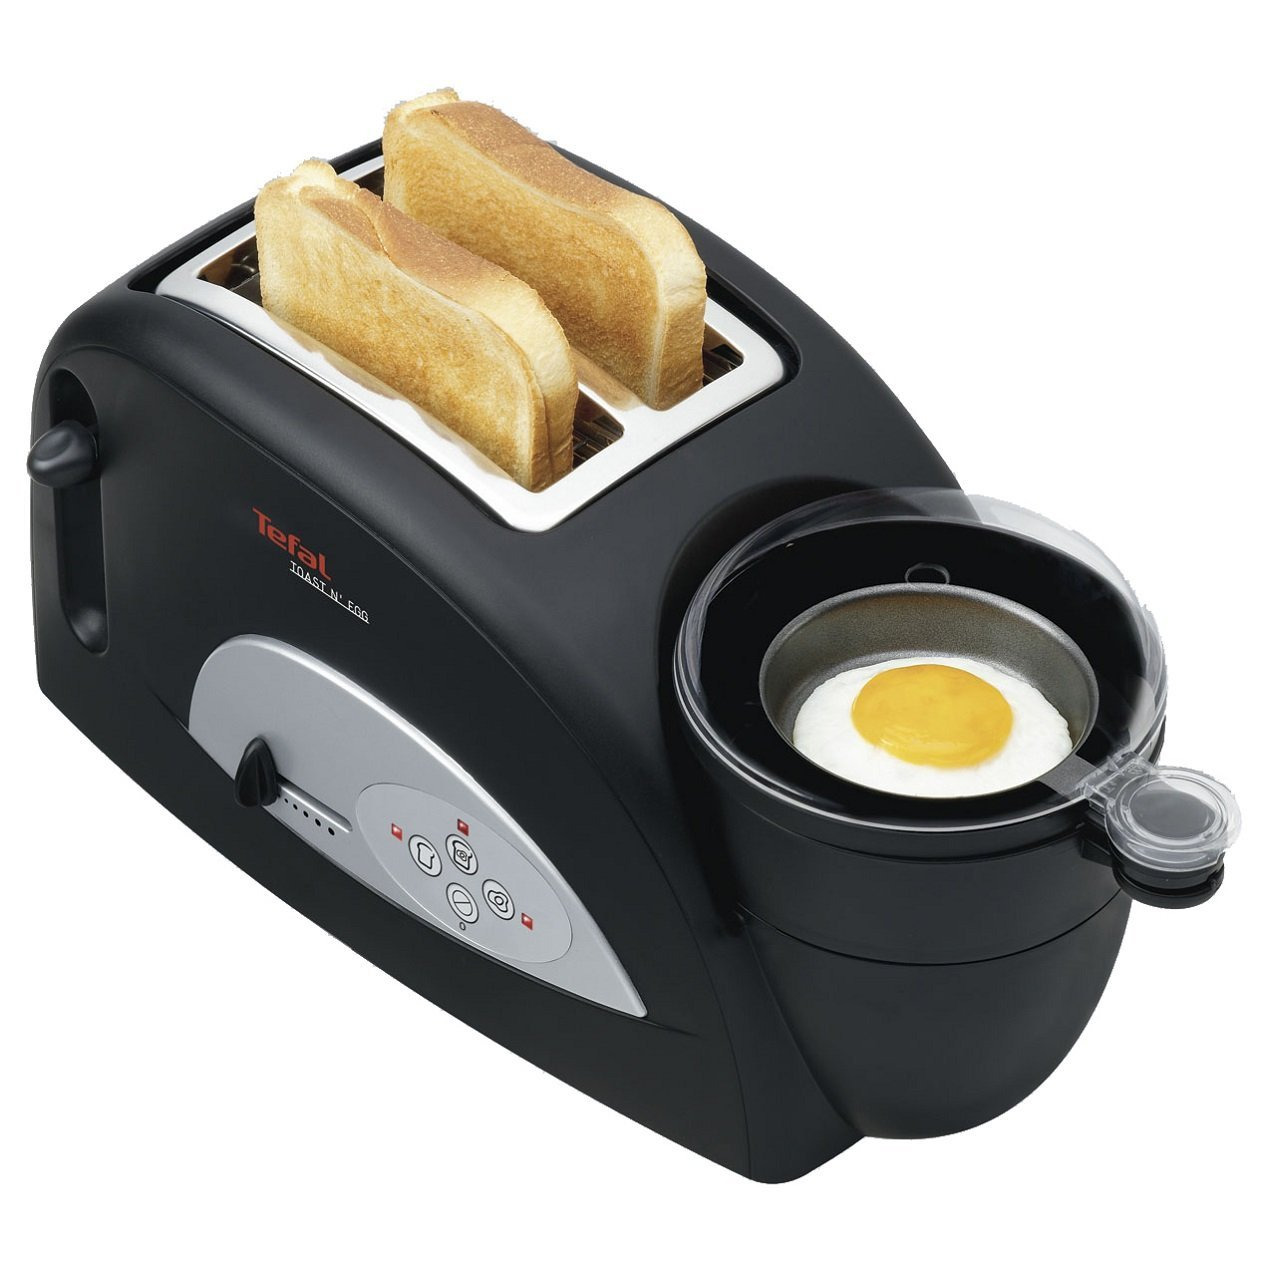 Tefal Toast and Egg Two Slice Toaster and Egg Maker, 1200 W